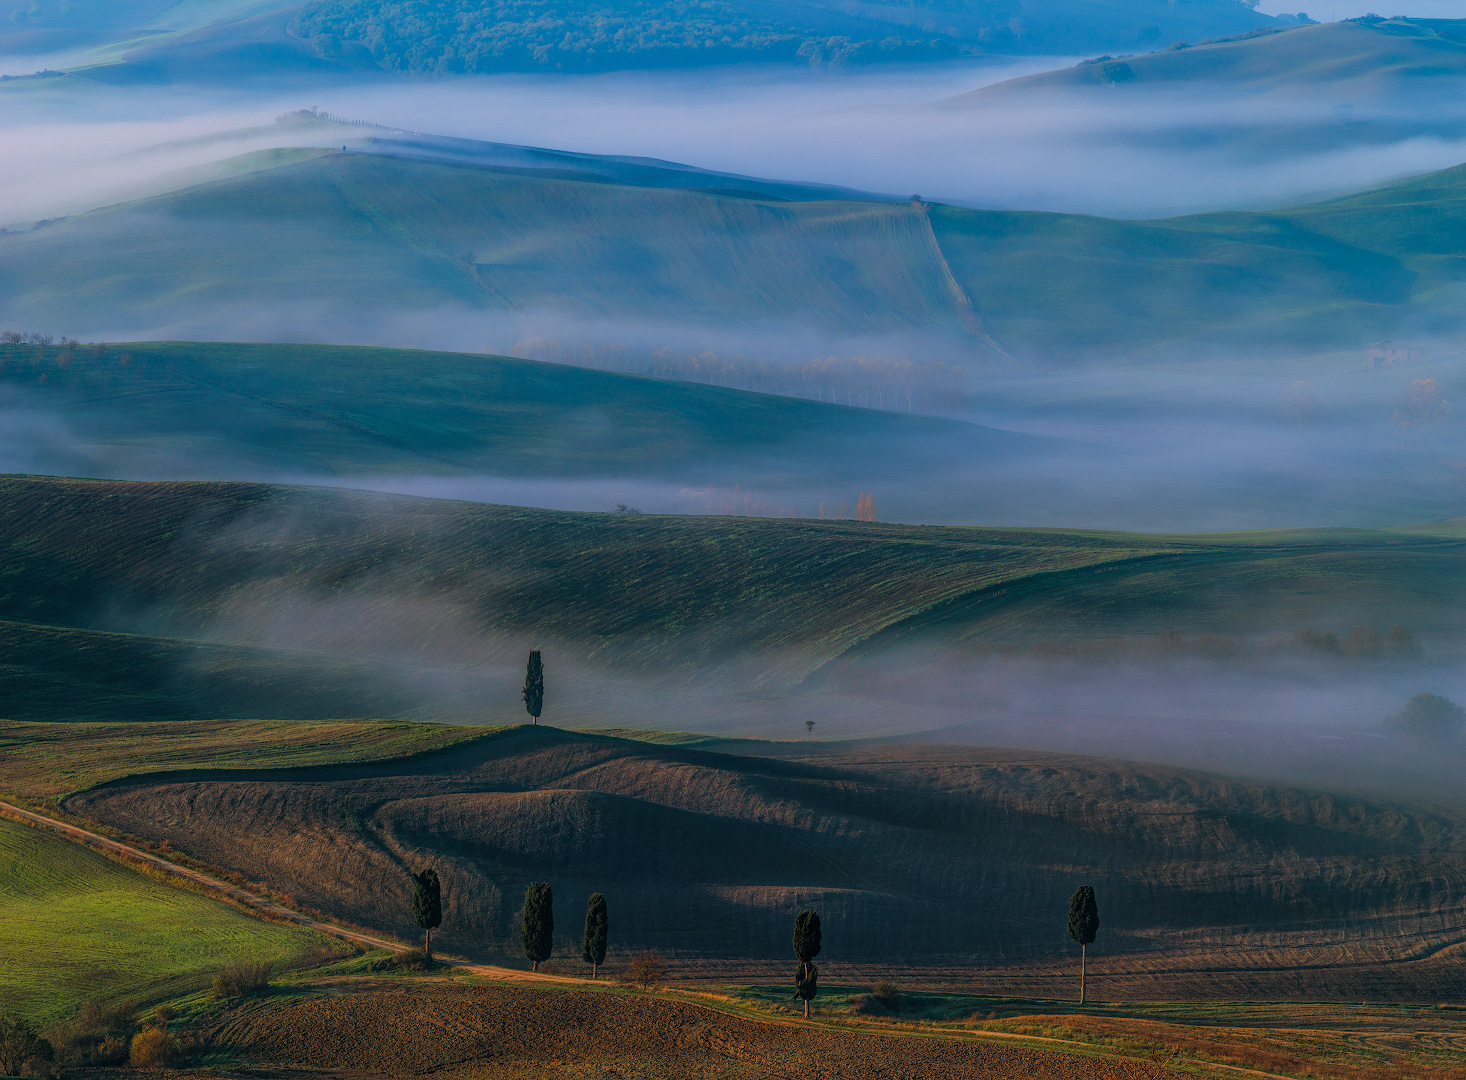 Autumn fogs in the Tuscany